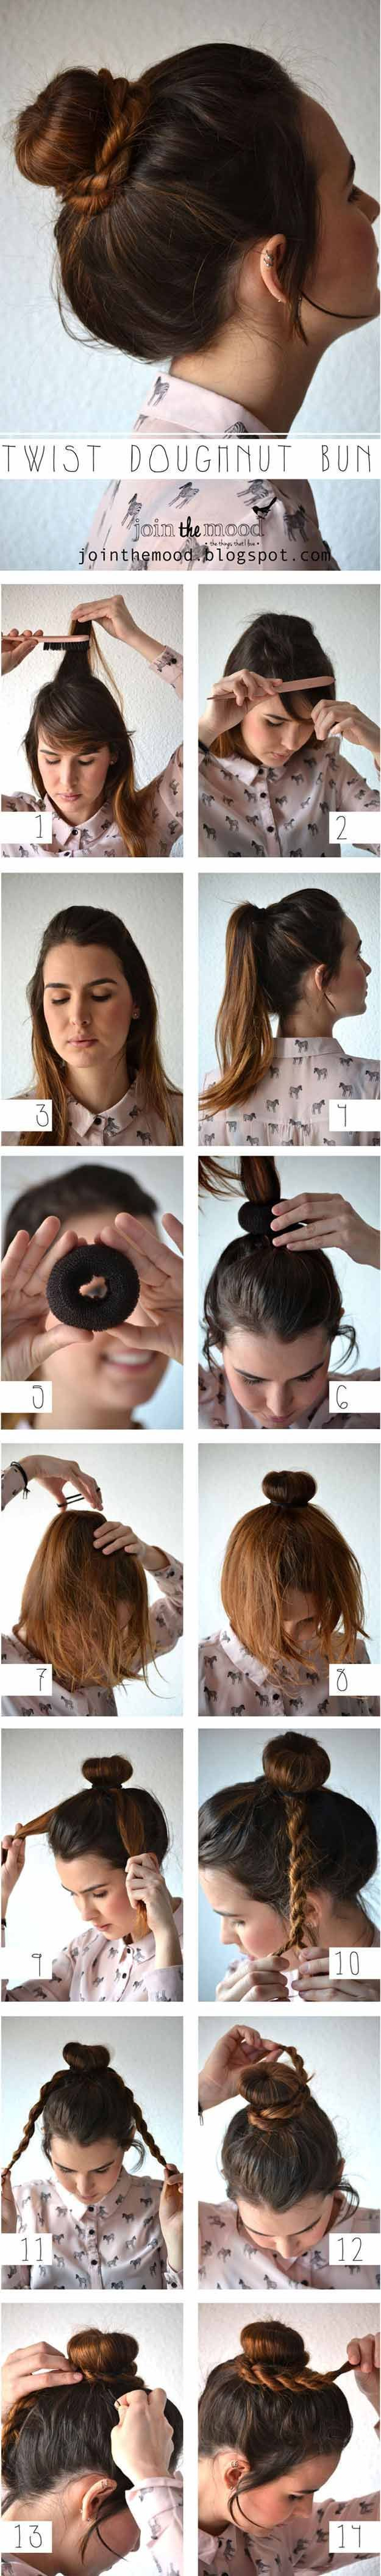 Quick and easy hairstyles for school best hairstyles for teens